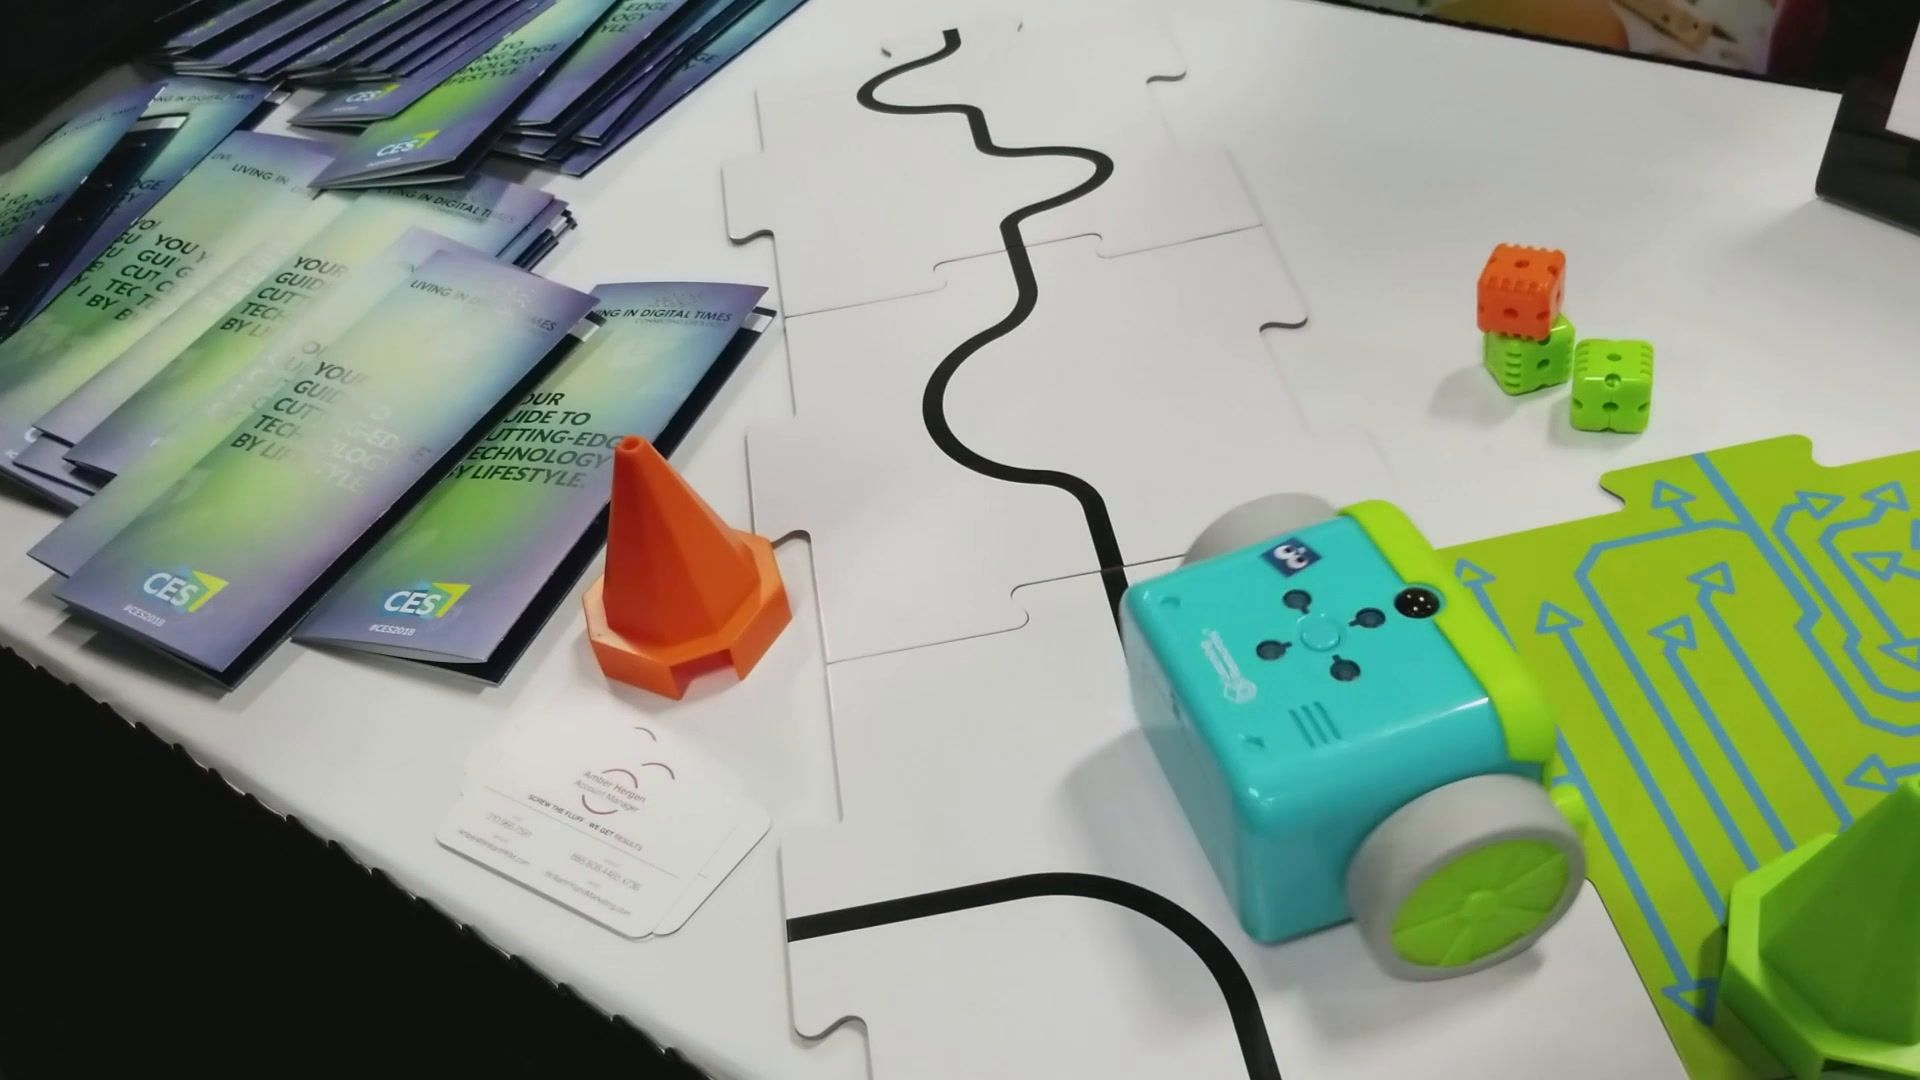 Botley Teaches Young Kids To Program No Screen Required